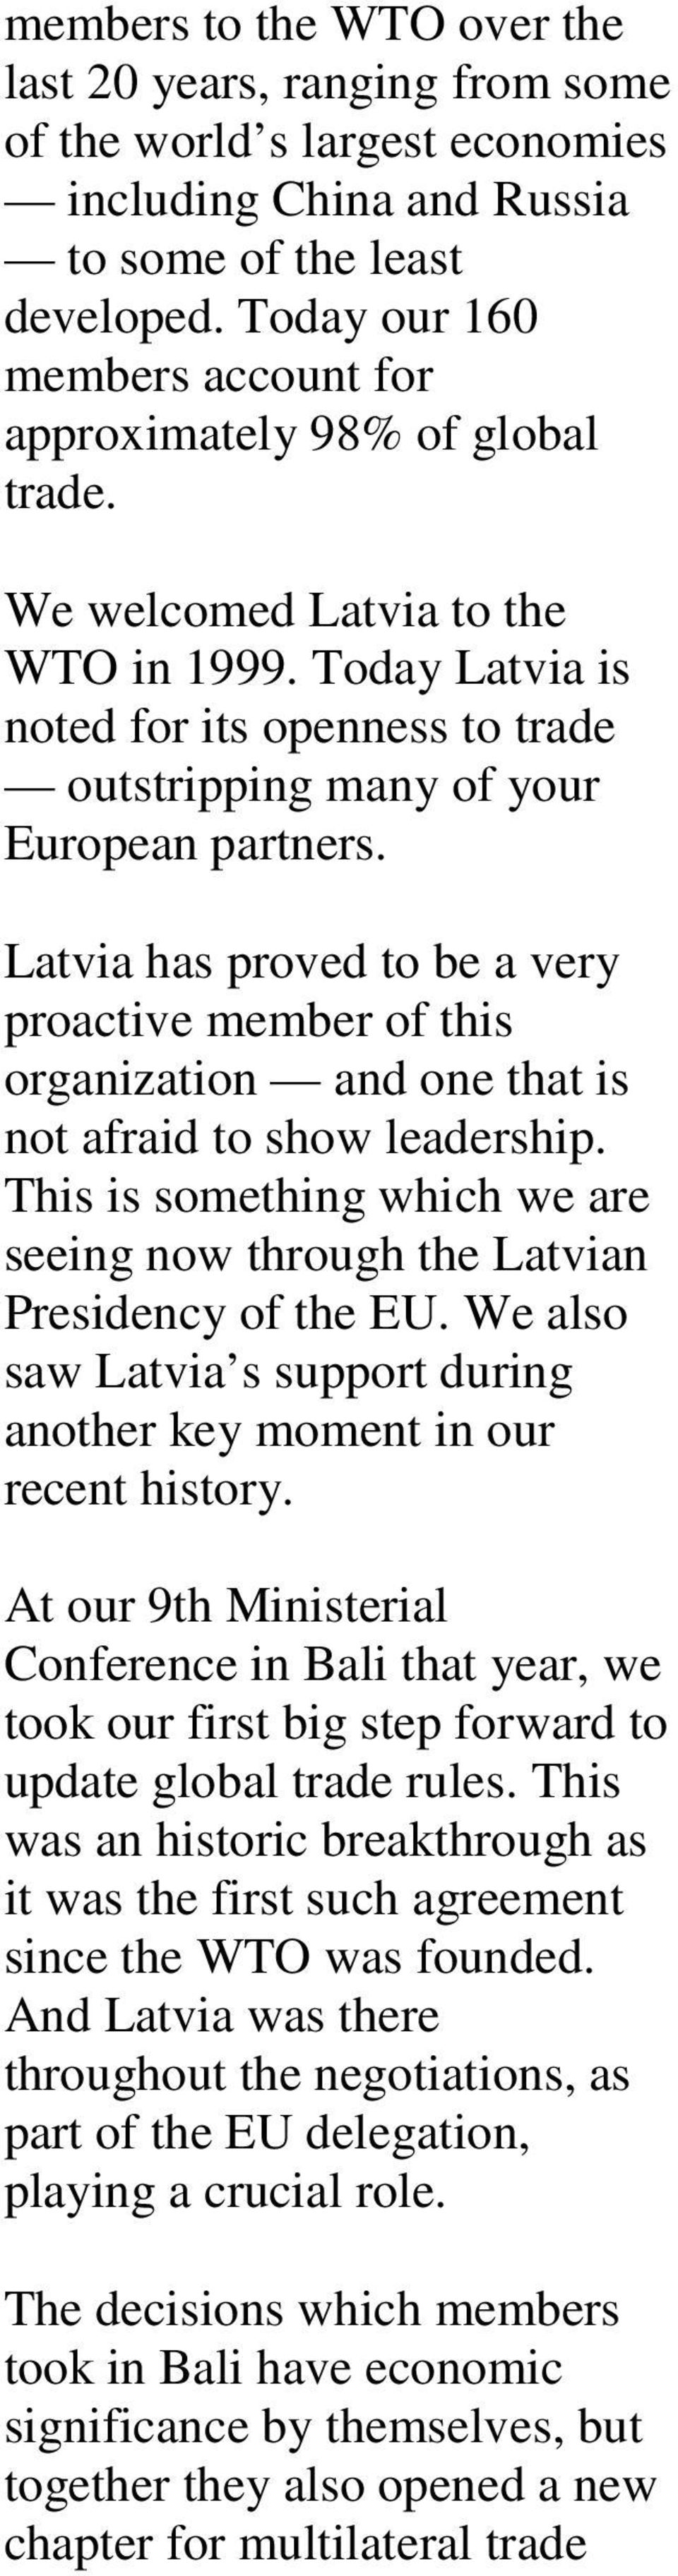 Latvia has proved to be a very proactive member of this organization and one that is not afraid to show leadership. This is something which we are seeing now through the Latvian Presidency of the EU.